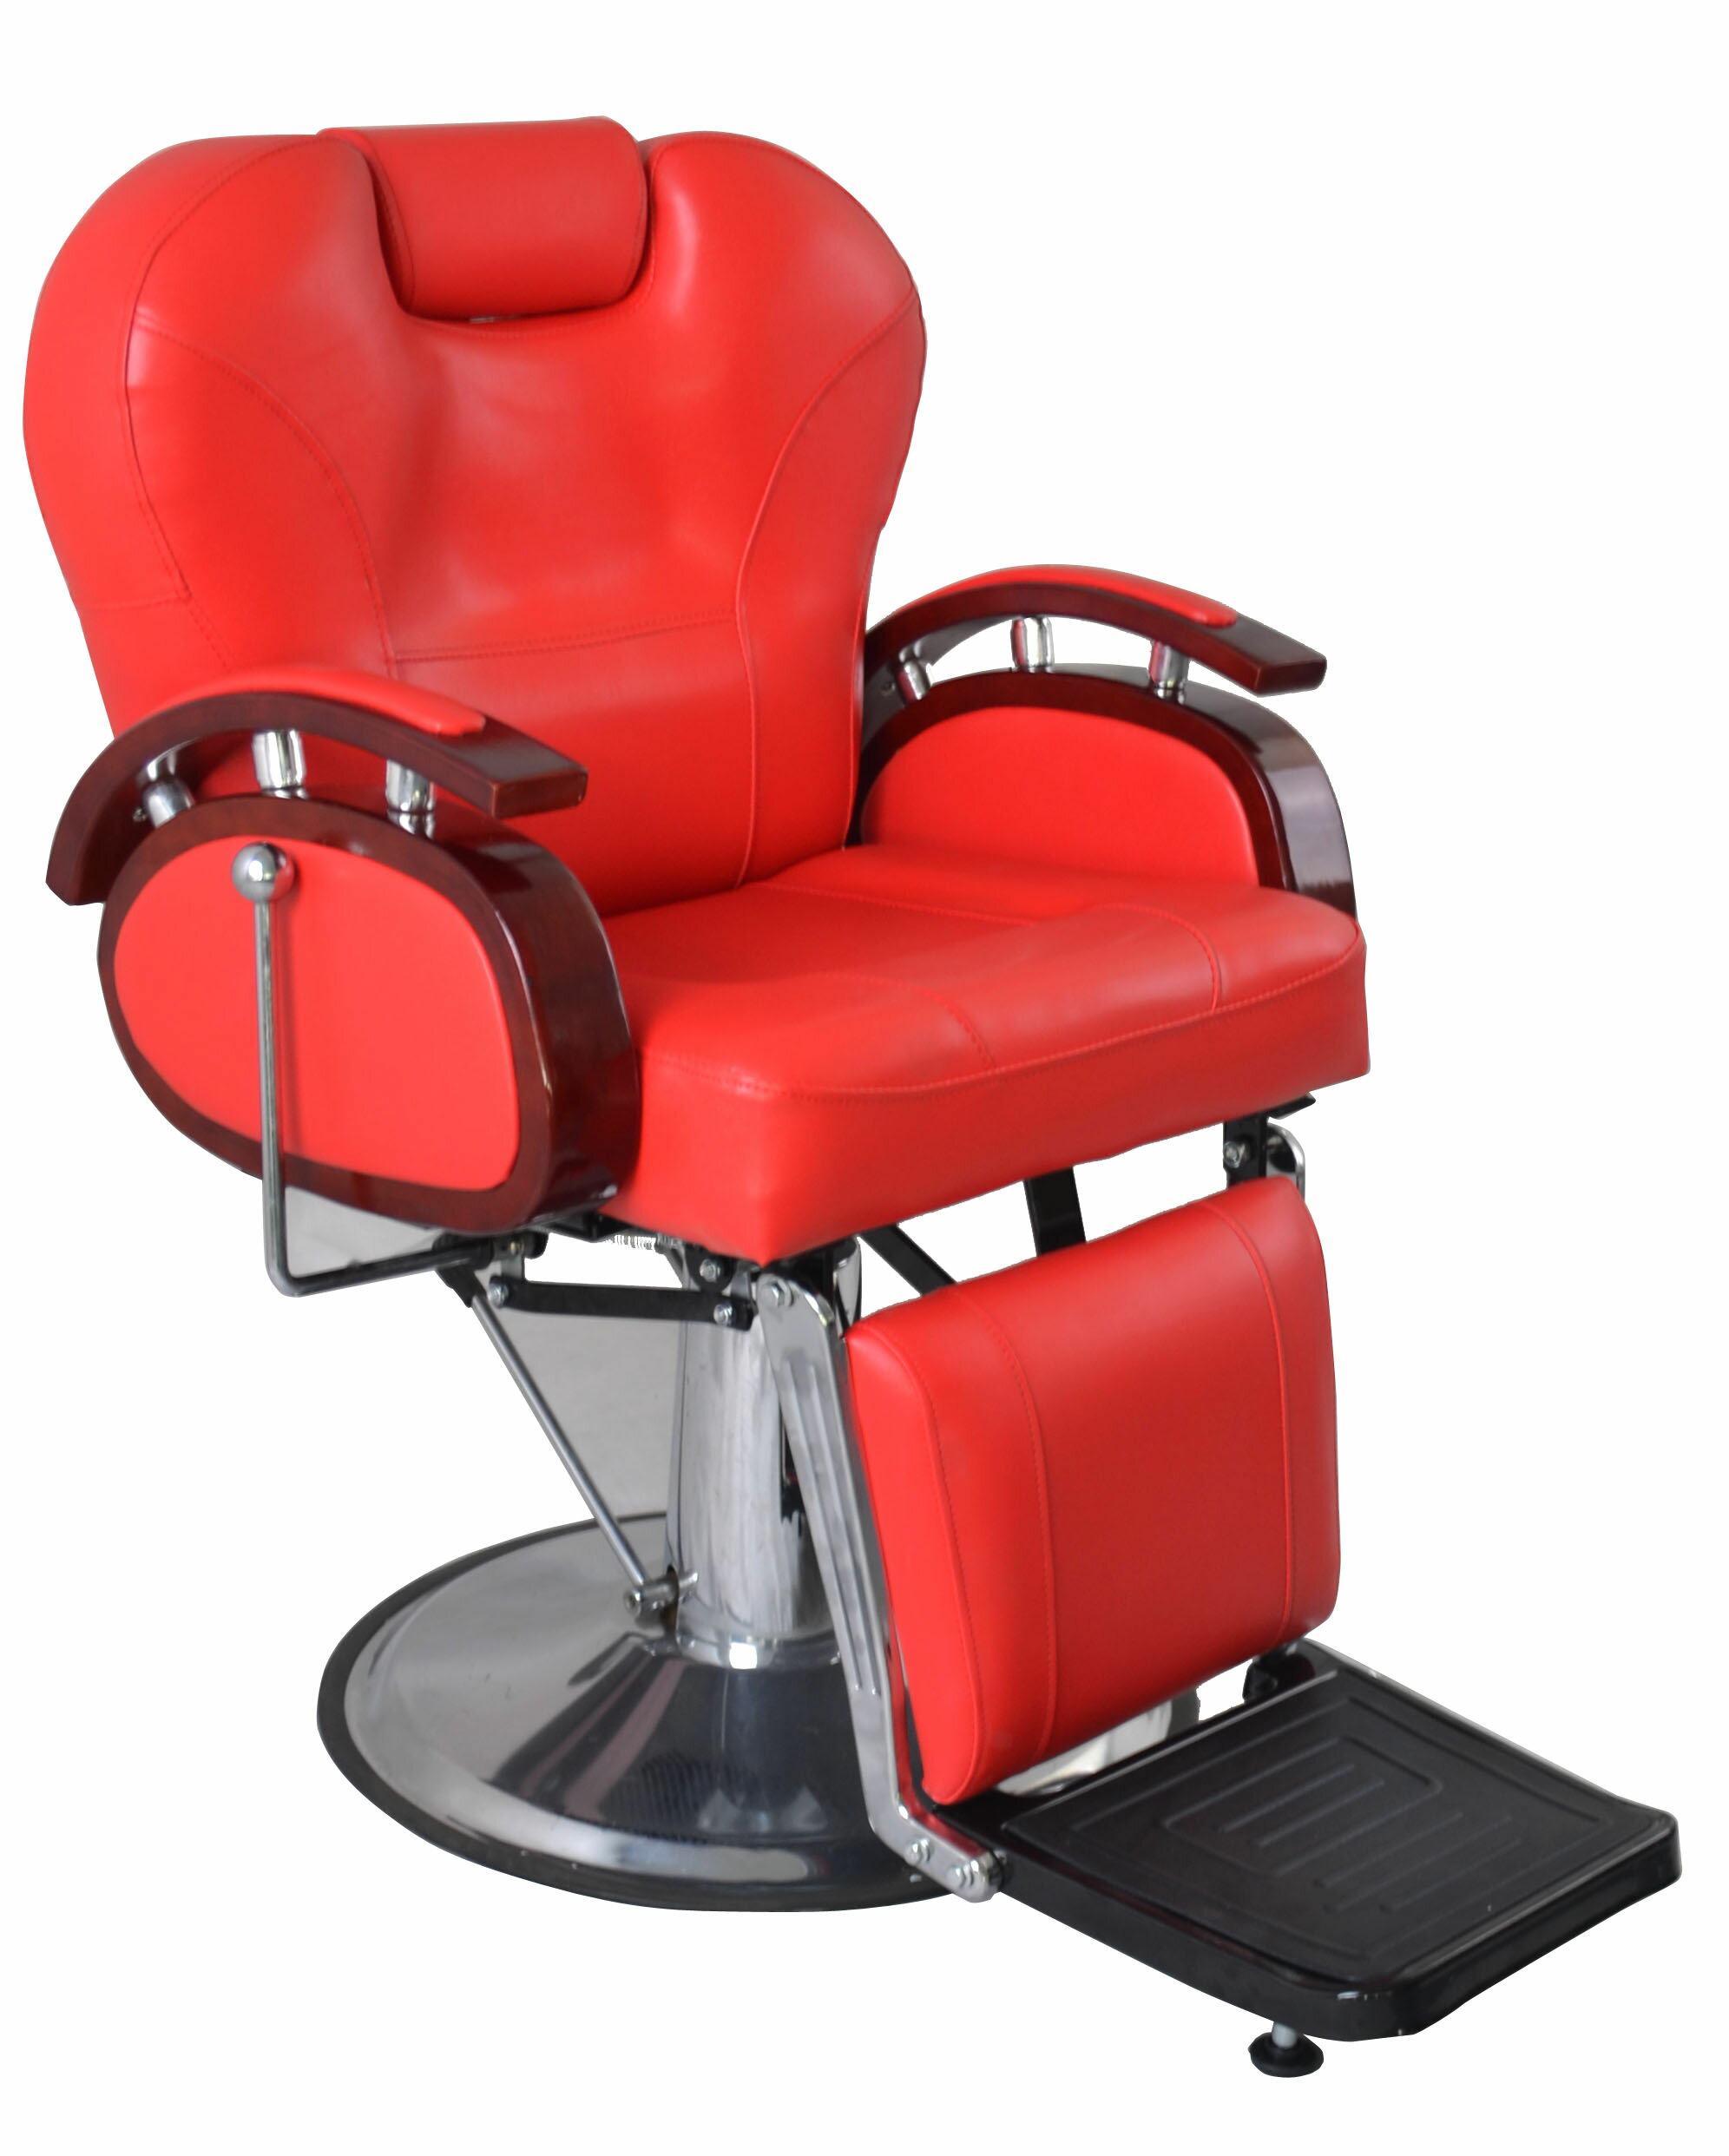 BarberPub All Purpose Hydraulic Recline Barber Chair Salon Beauty Spa  Shampoo Equipment 8705 4